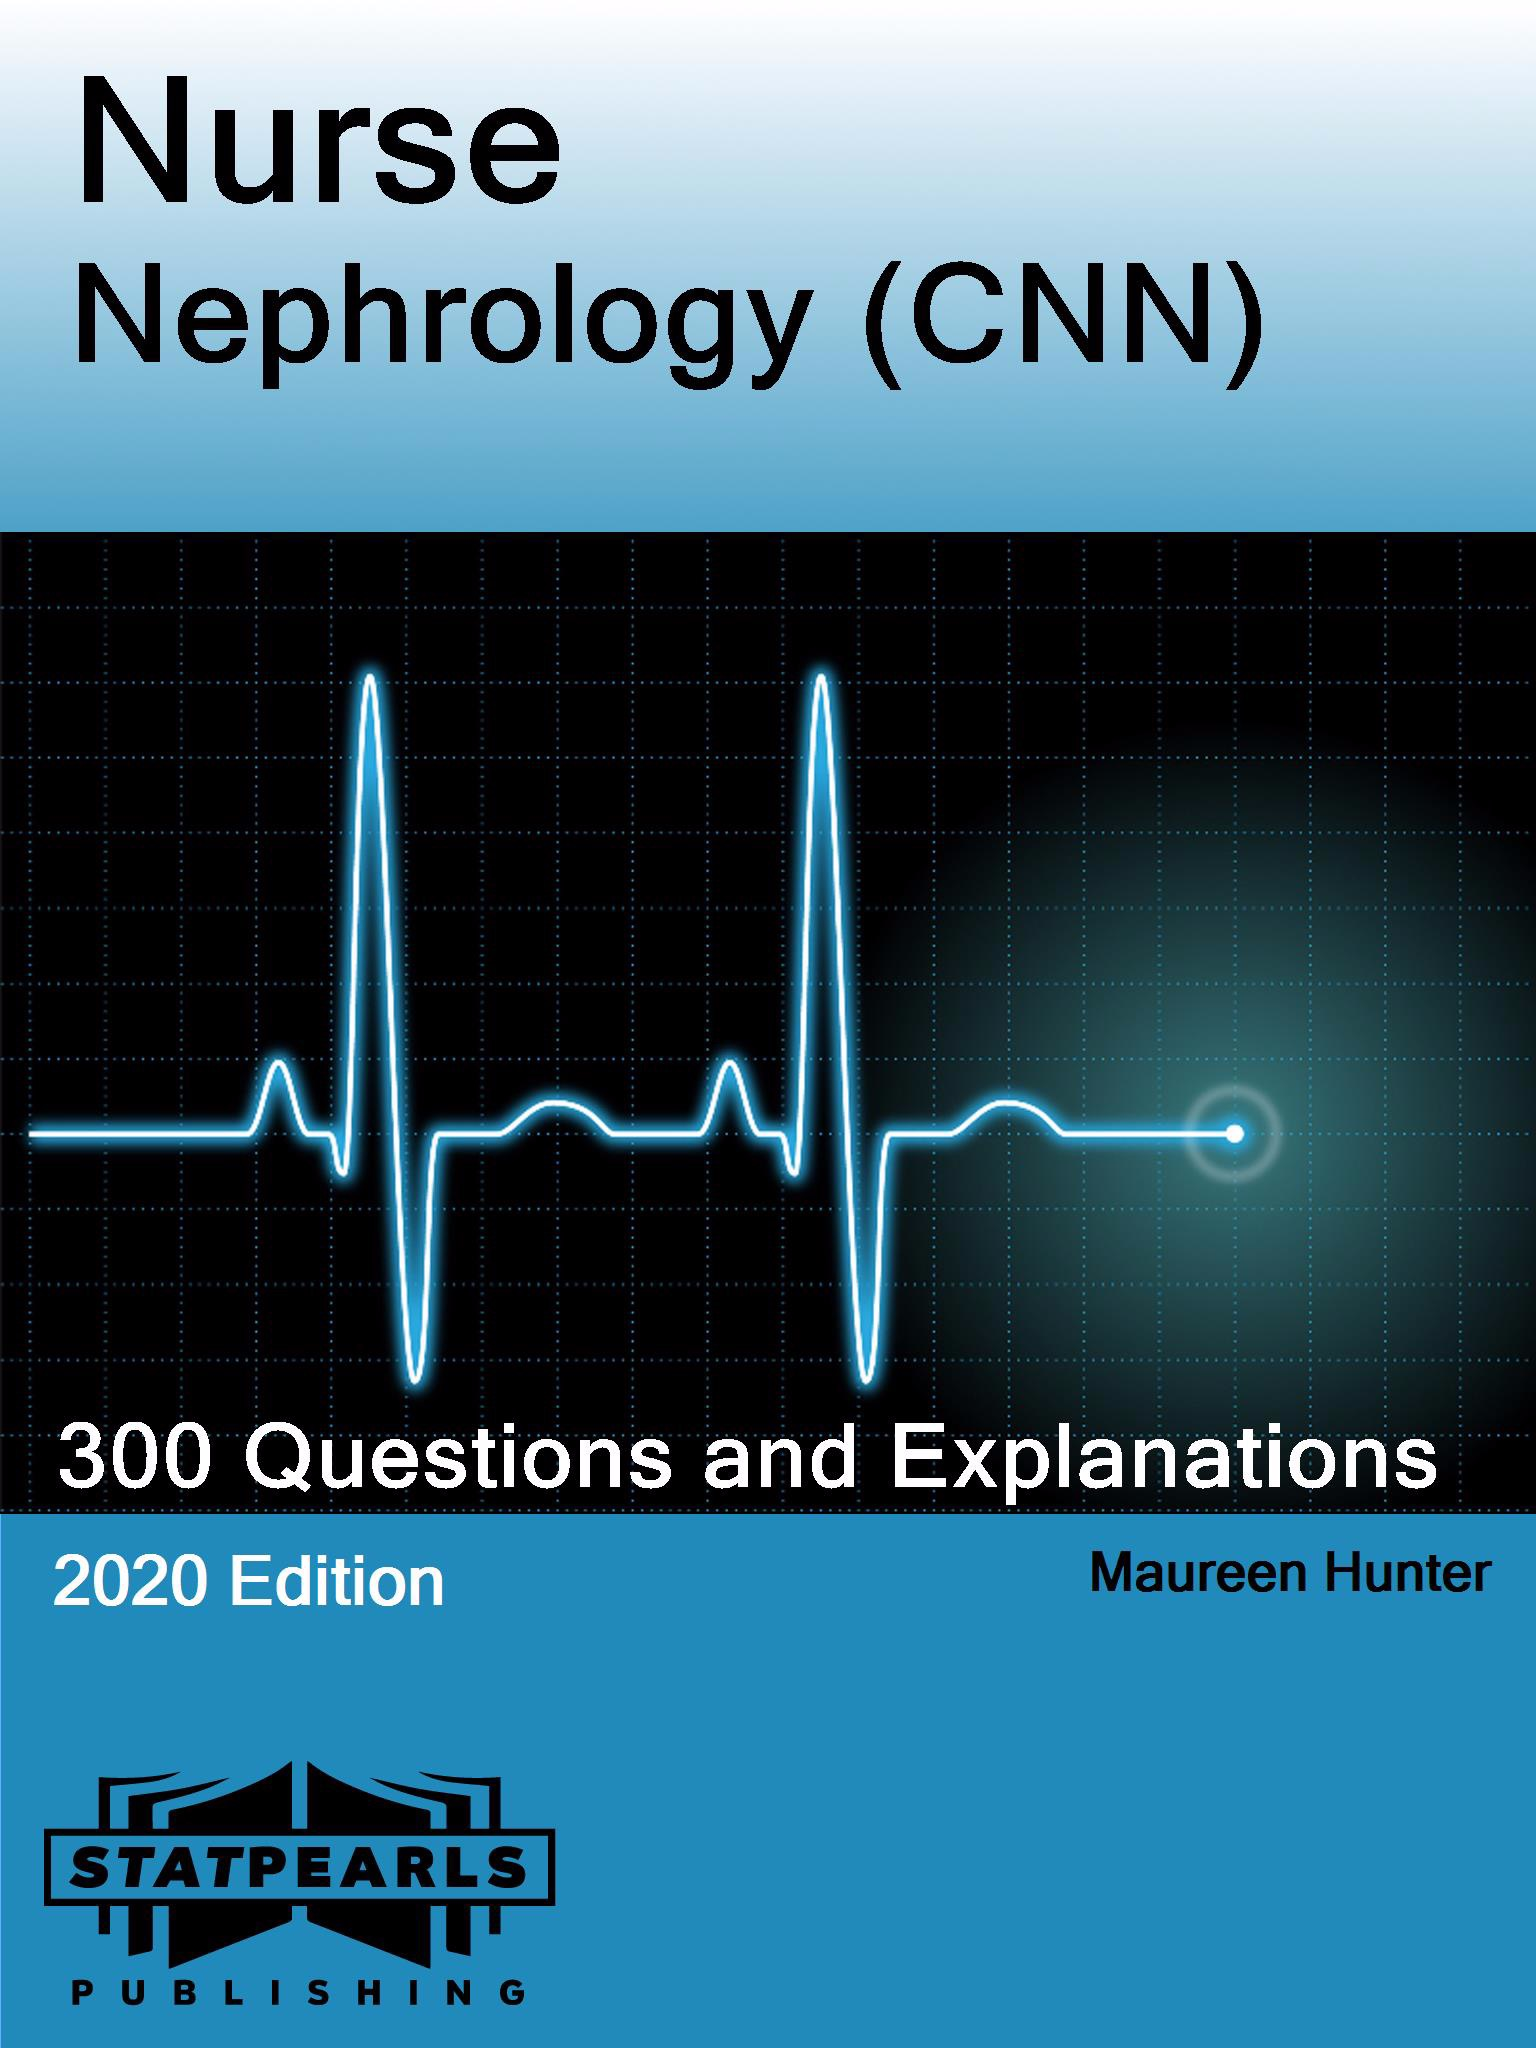 Nurse Nephrology (CNN)